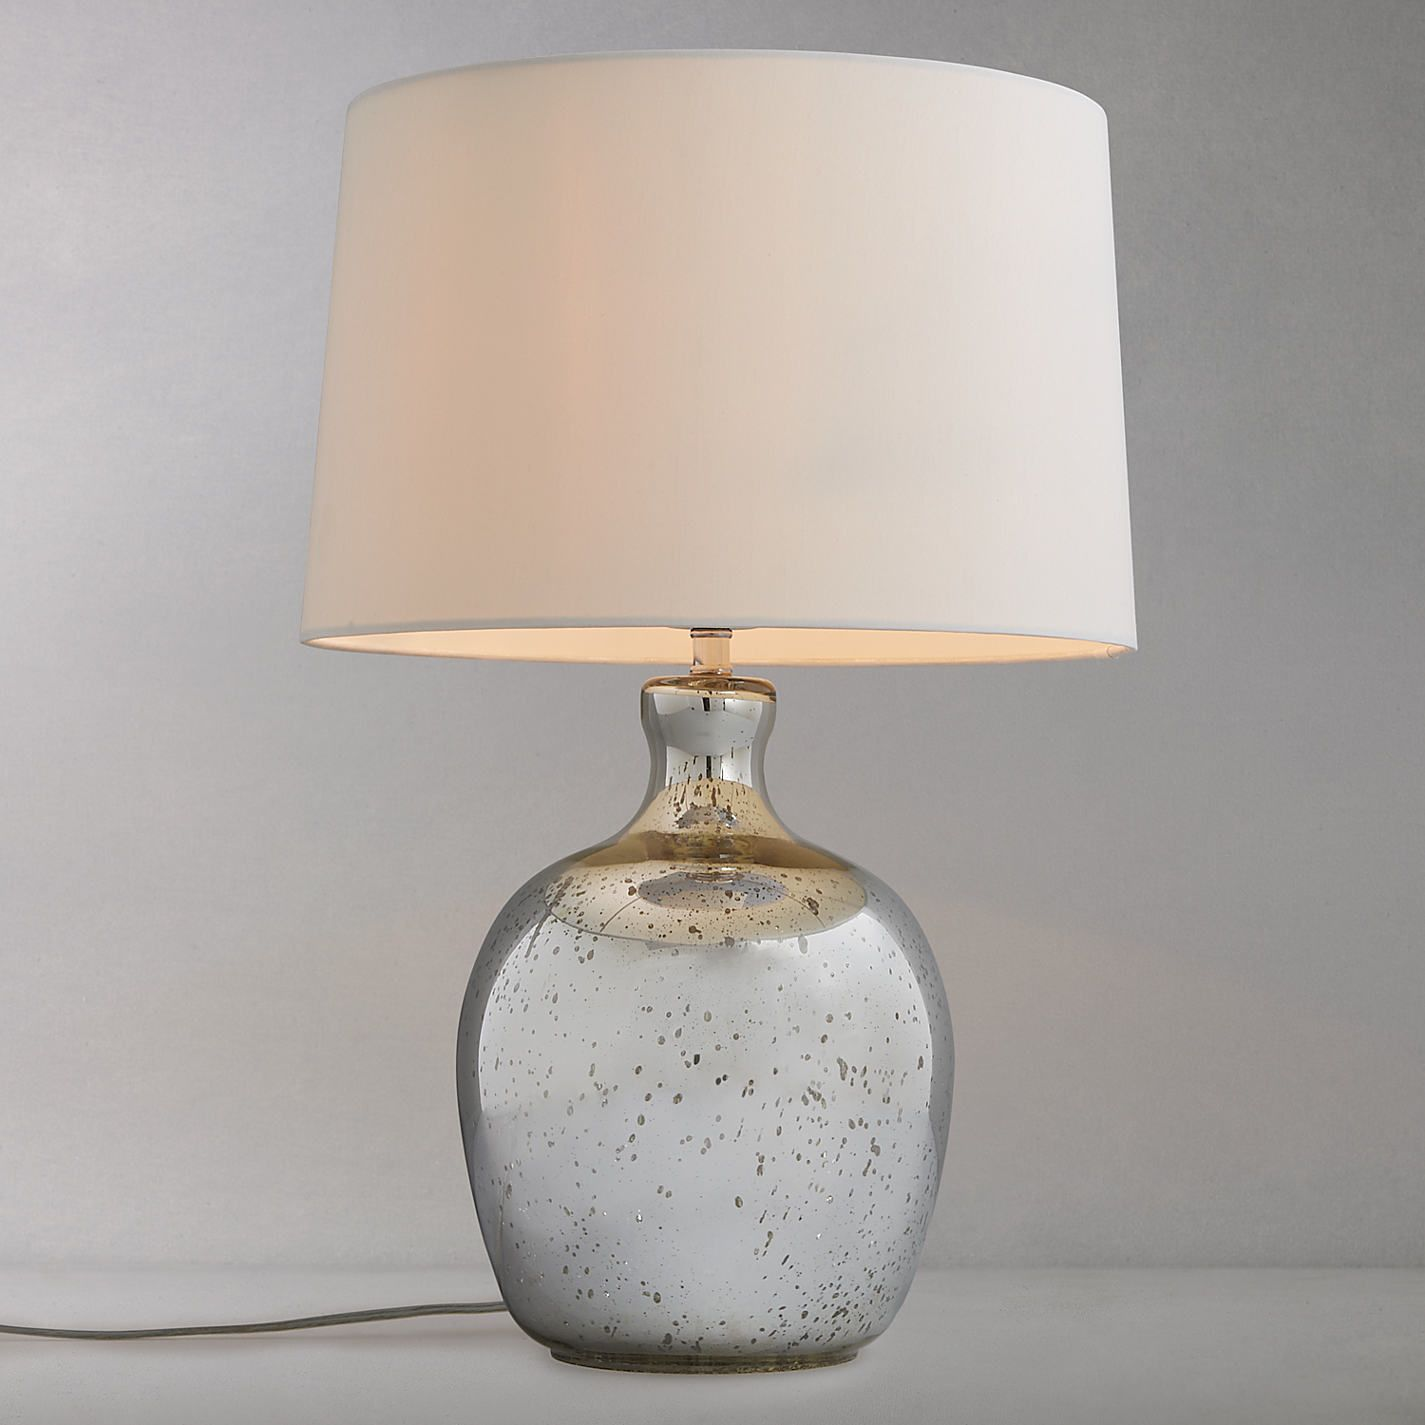 Httpsjohnlewisene7isimagejohnlewis231895027alt4 buy john lewis tabitha distressed mirror table lamp from our table lamps range at john lewis geotapseo Image collections